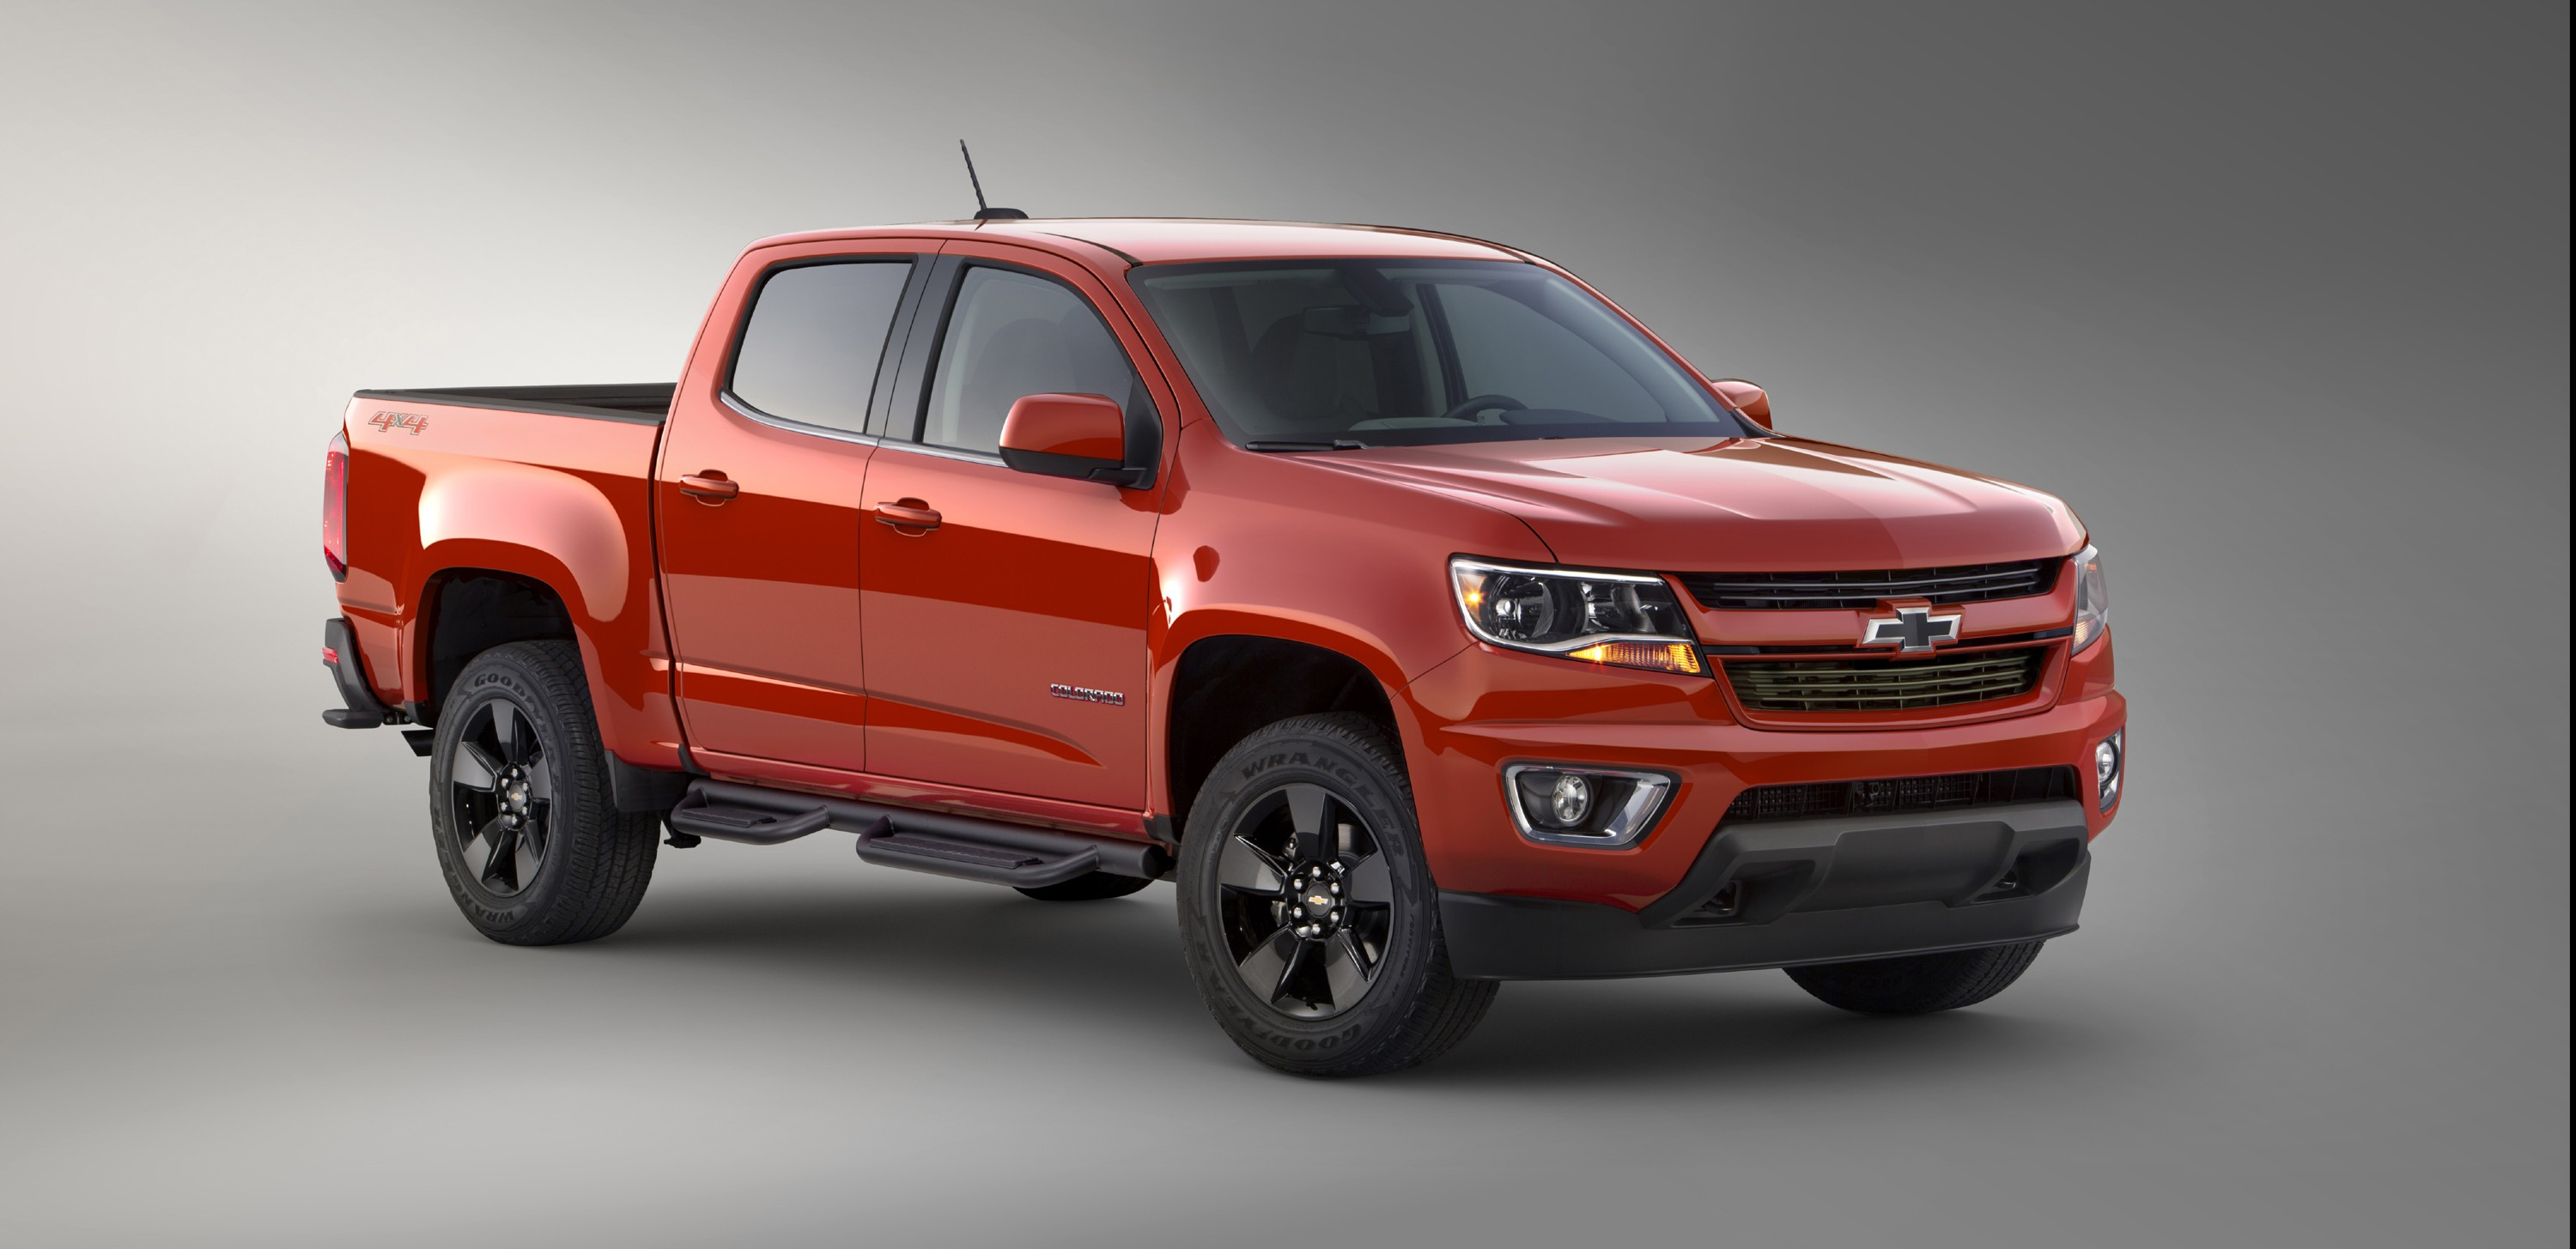 2015 Chevrolet Colorado Gearon Edition Confirmed To Debut